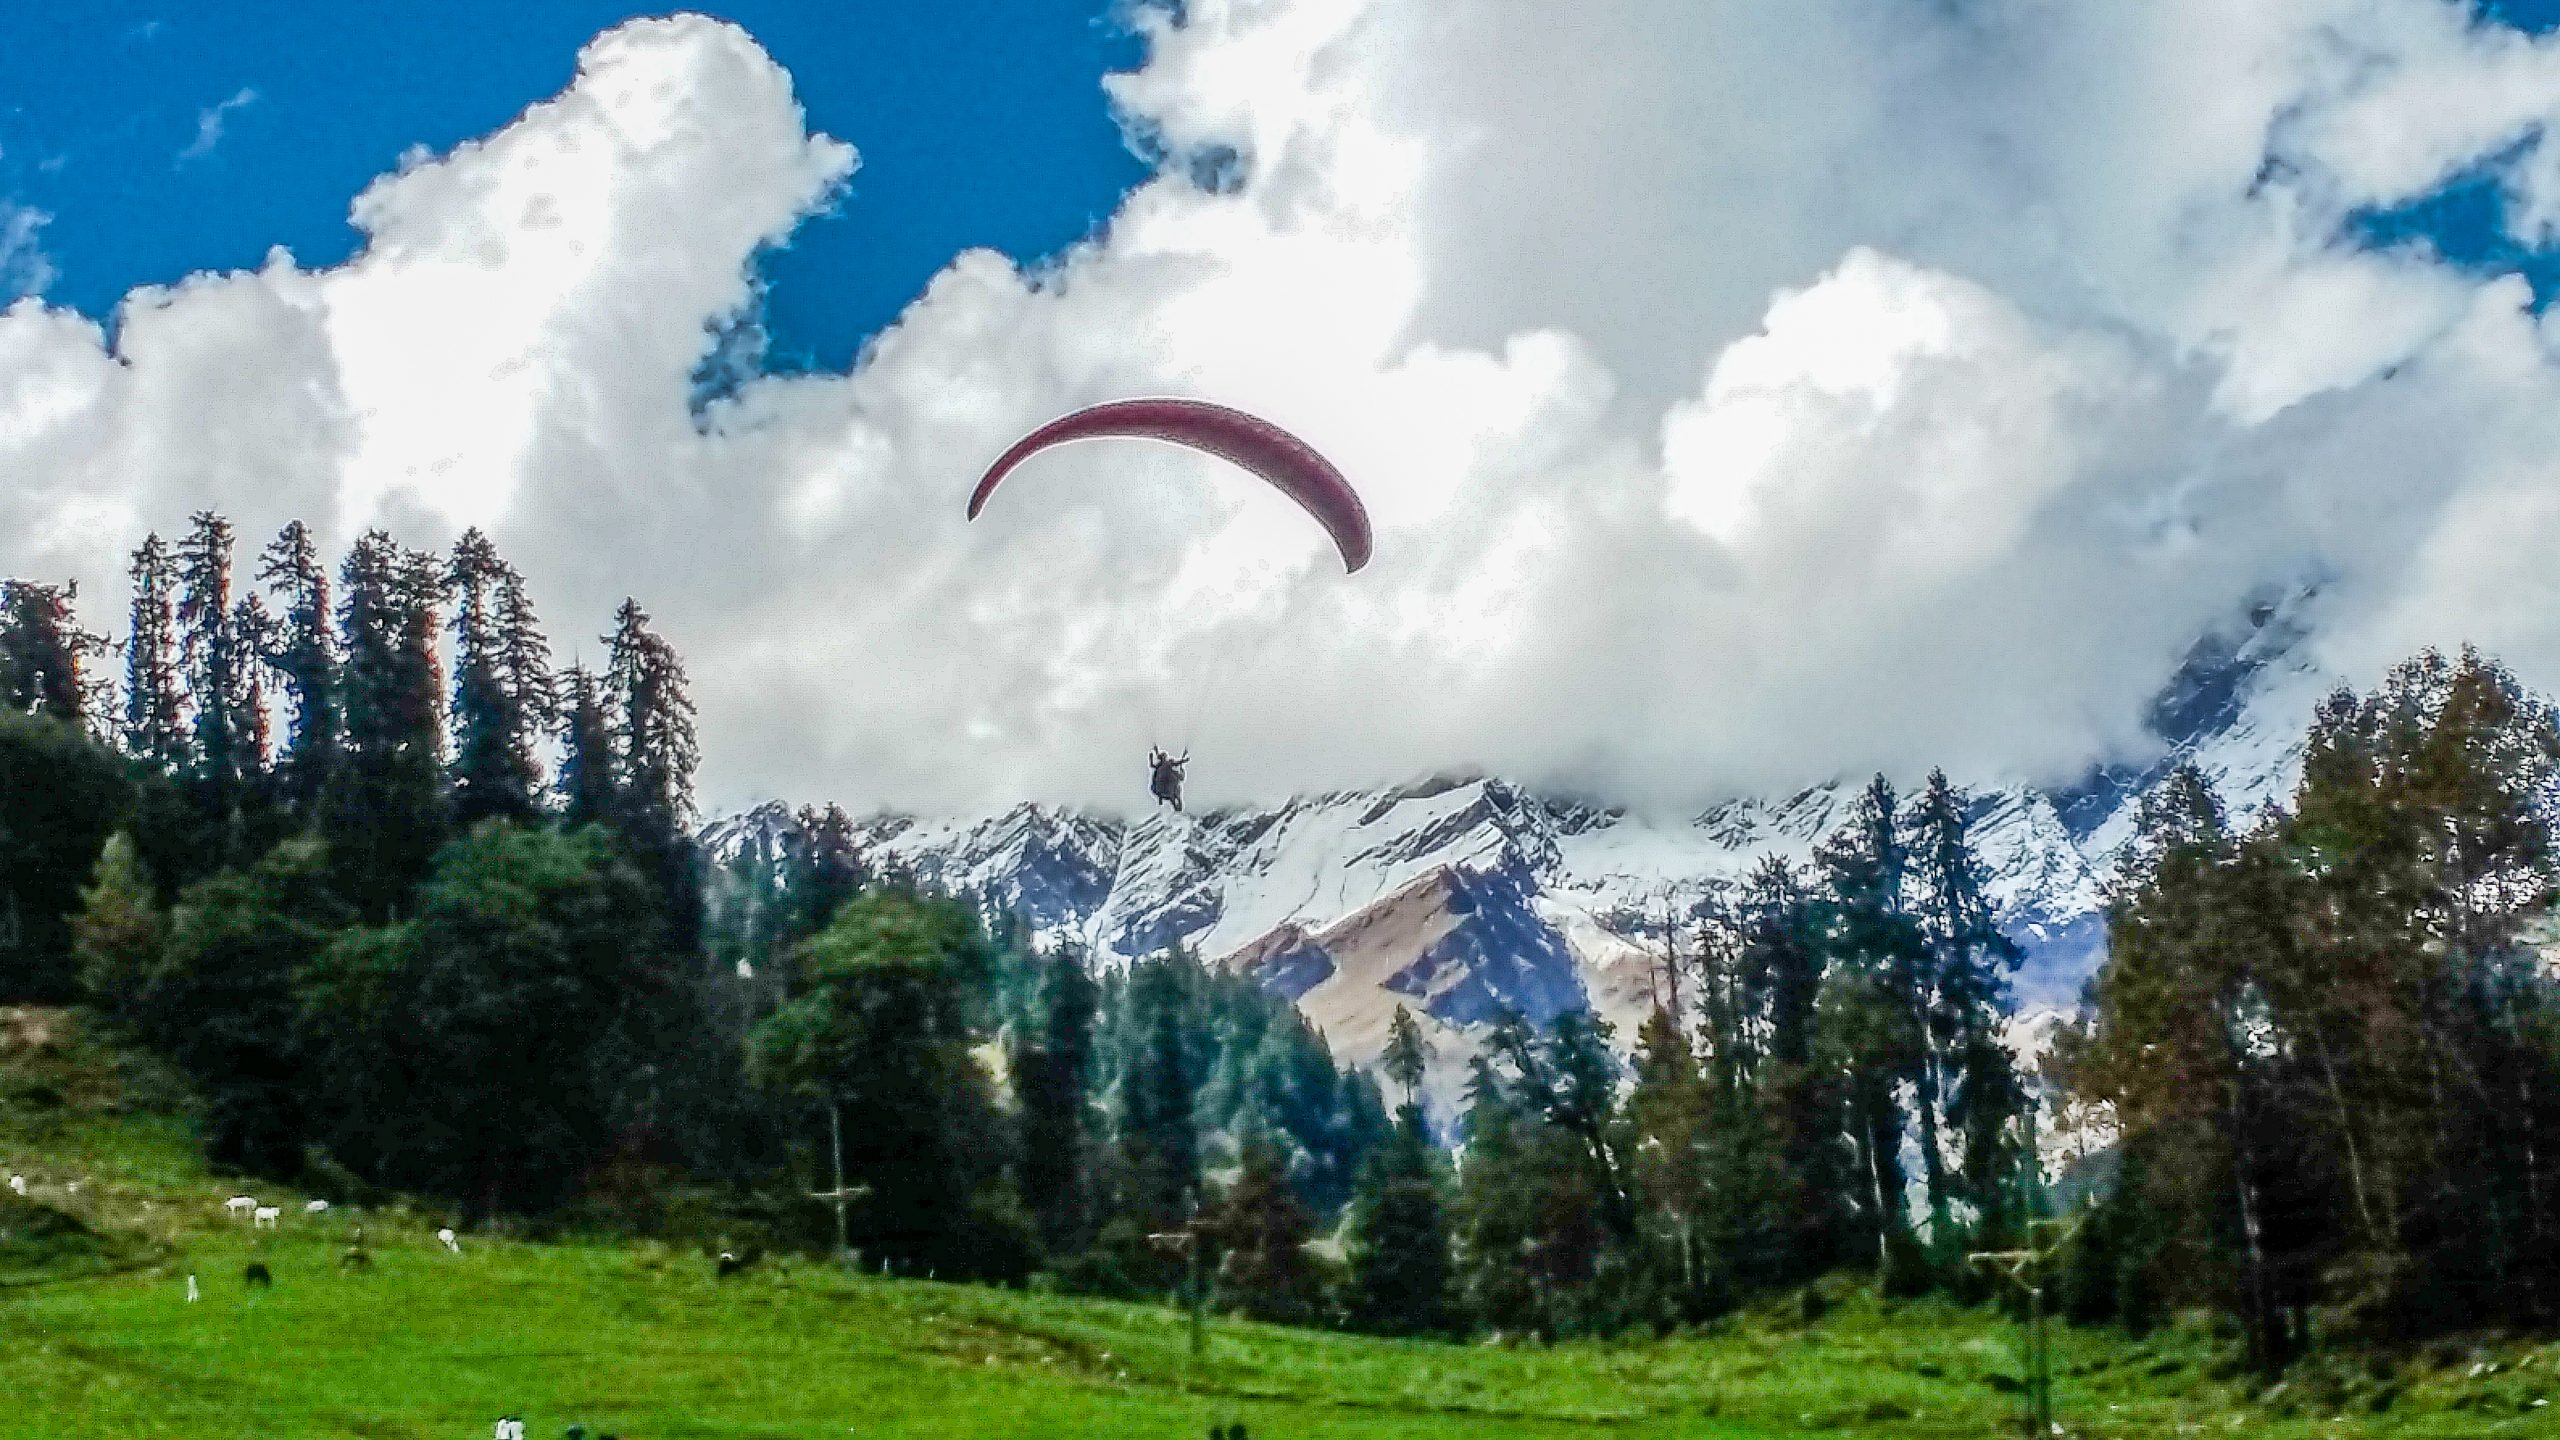 Paragliding in hilly area